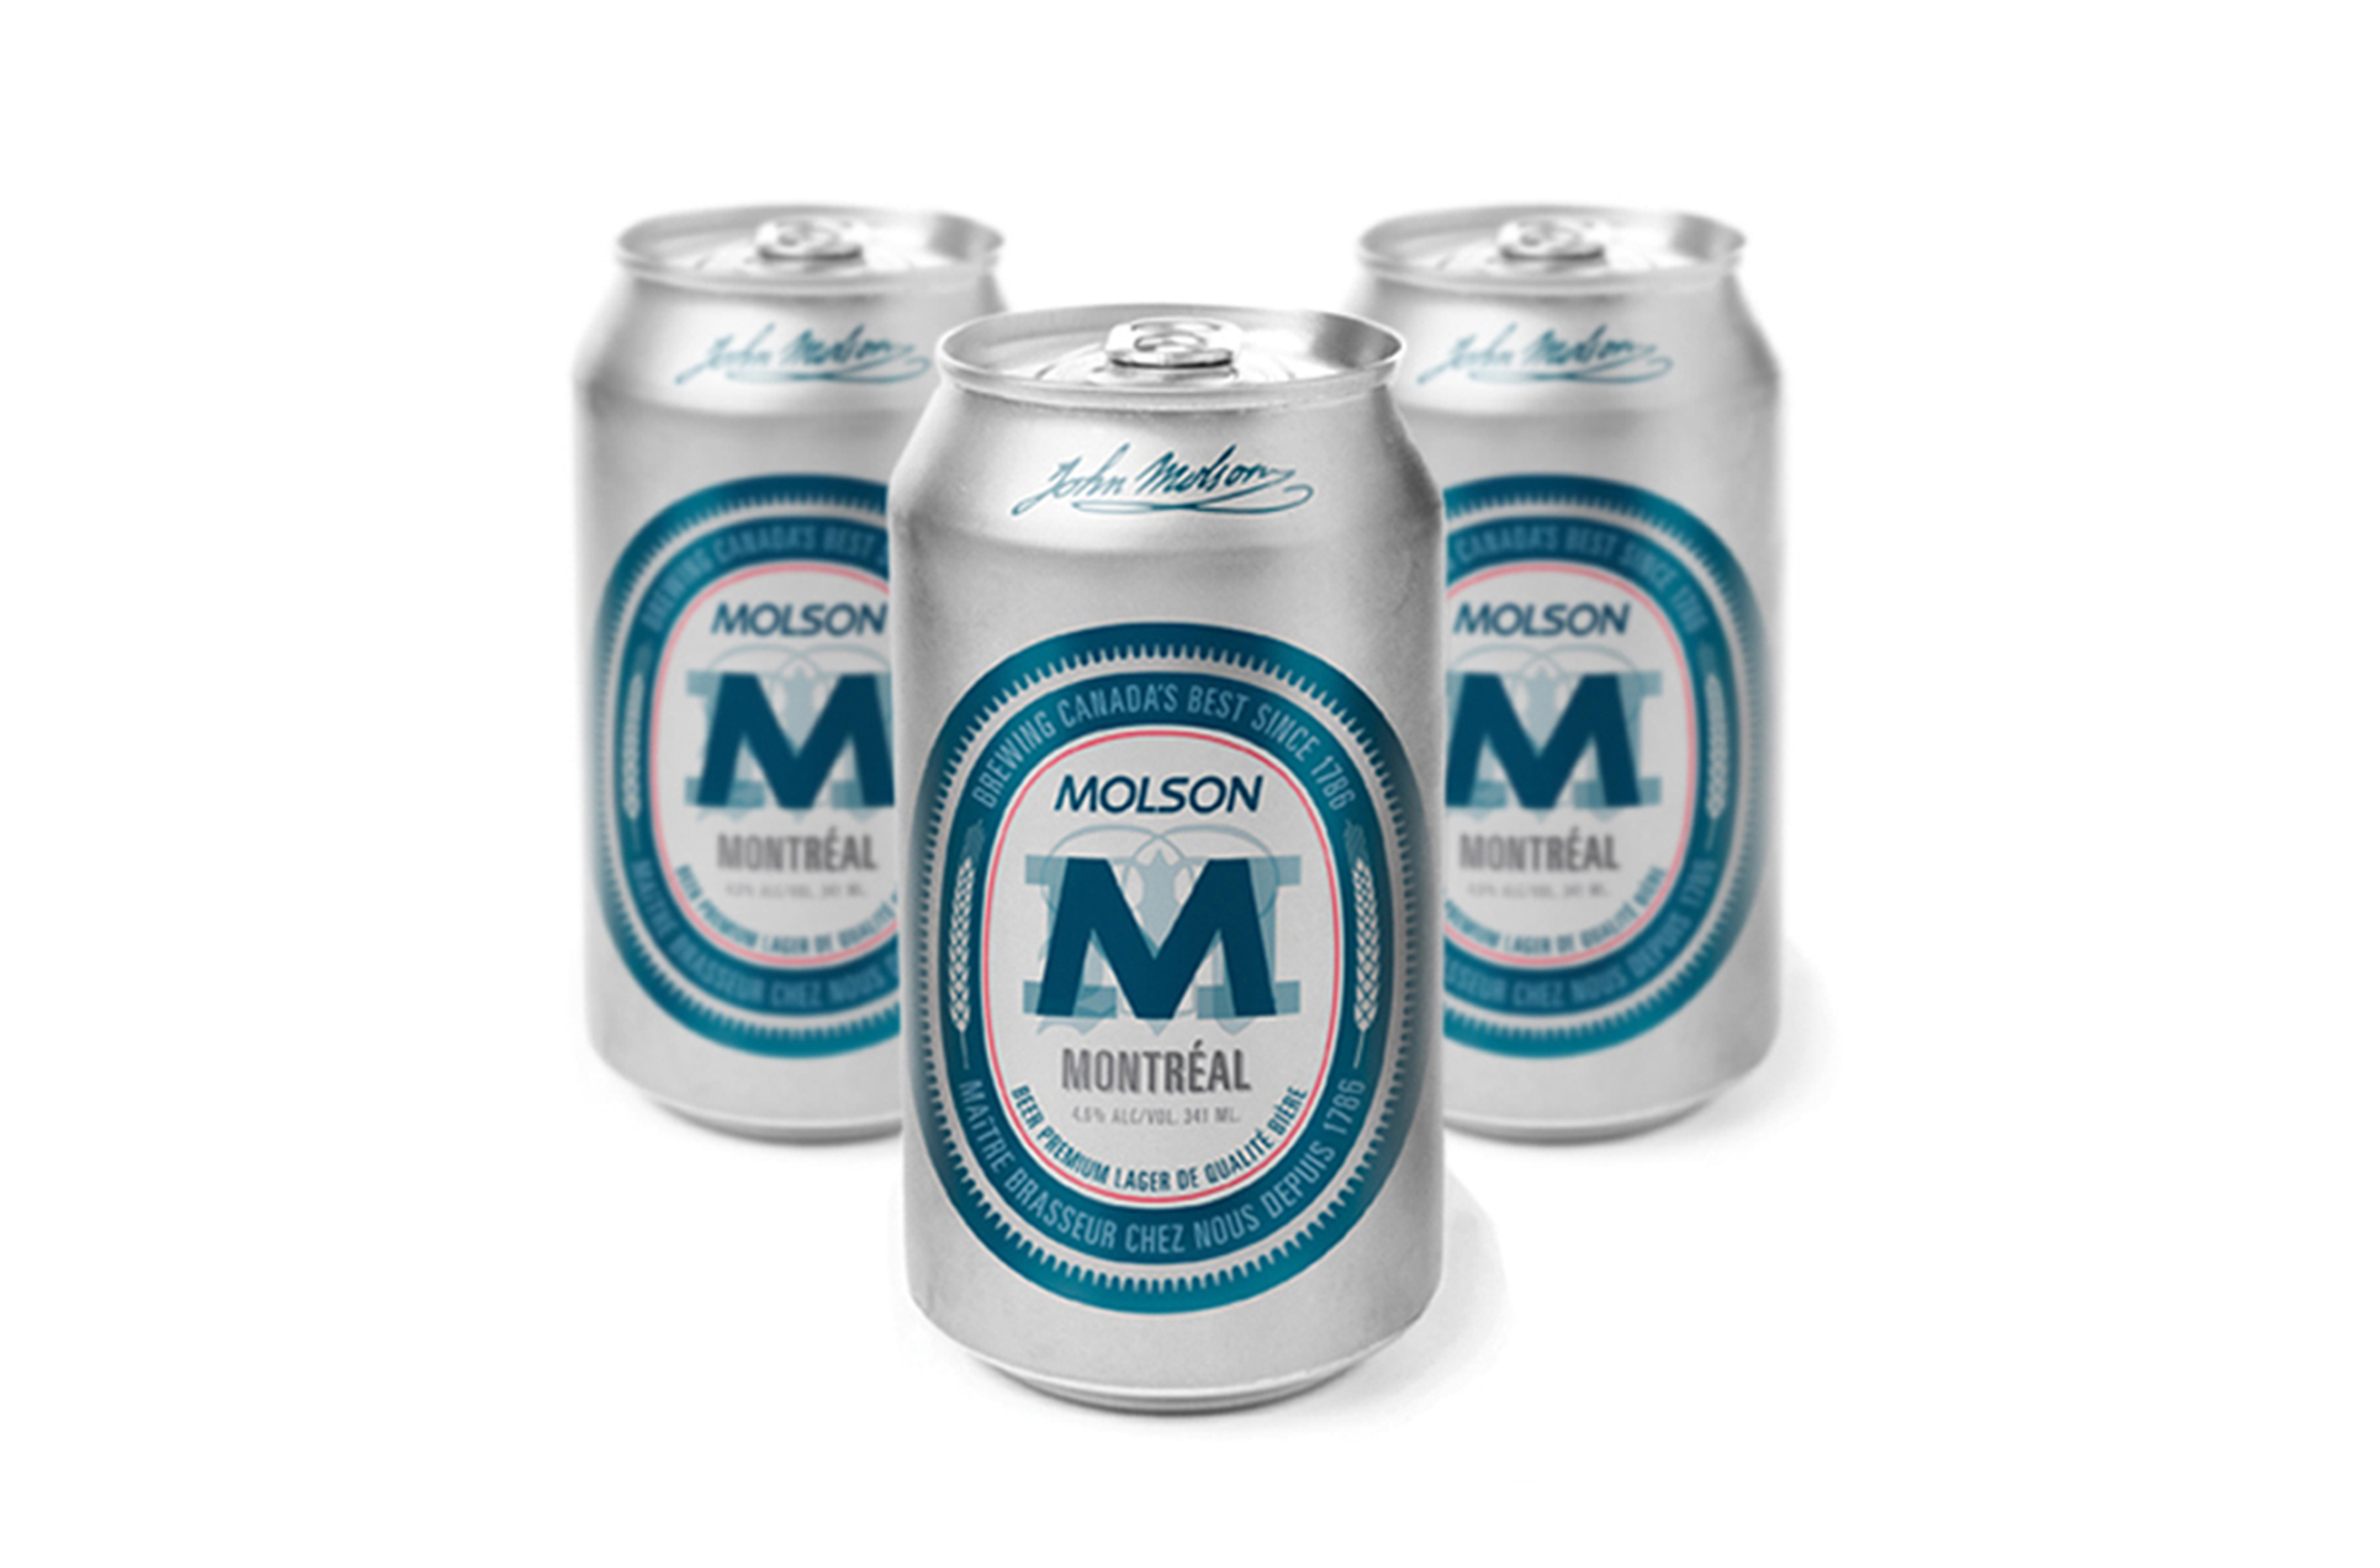 Molson Montreal cans